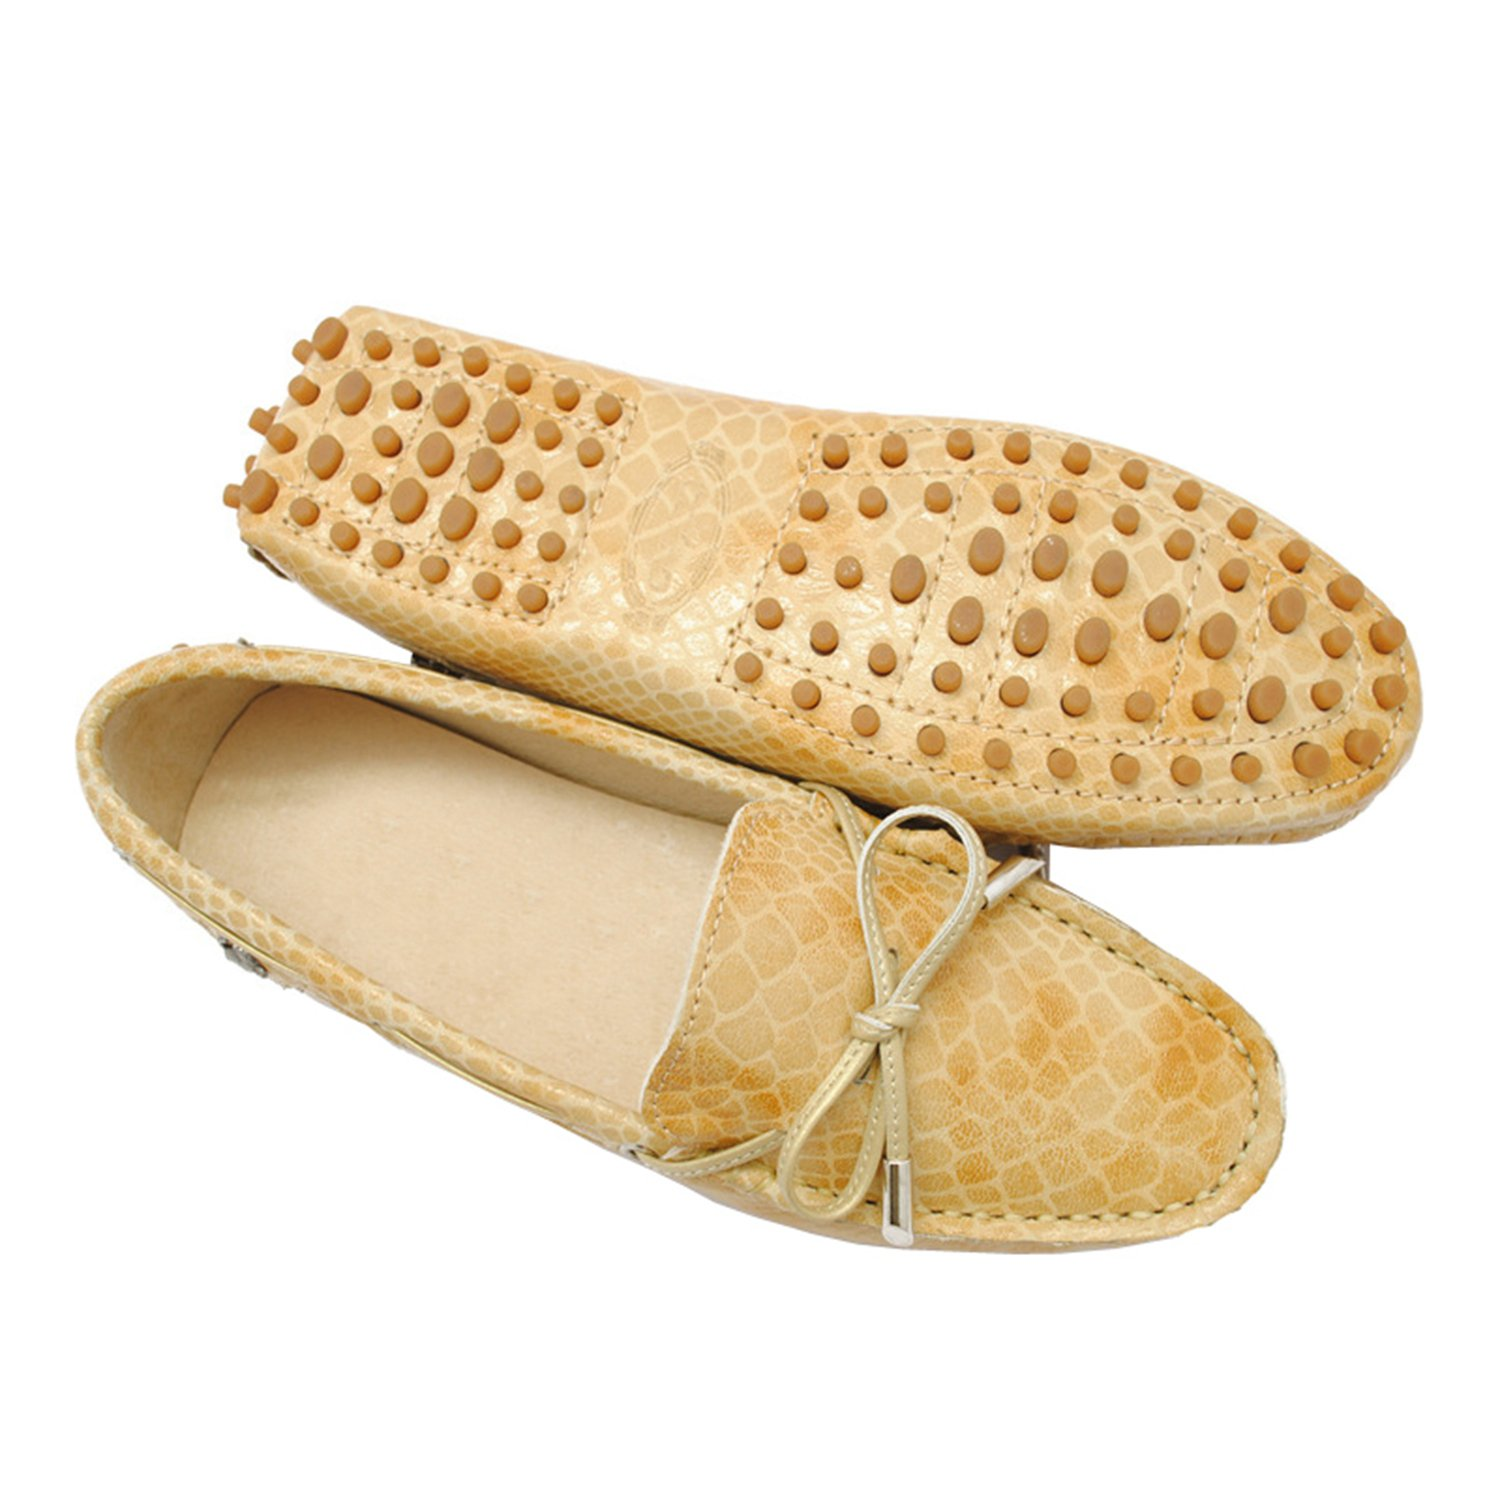 9d75e8f86dc98 Minishion Women's Casual Knot Synthetic Driving Shoes Loafers Moccasin Flats